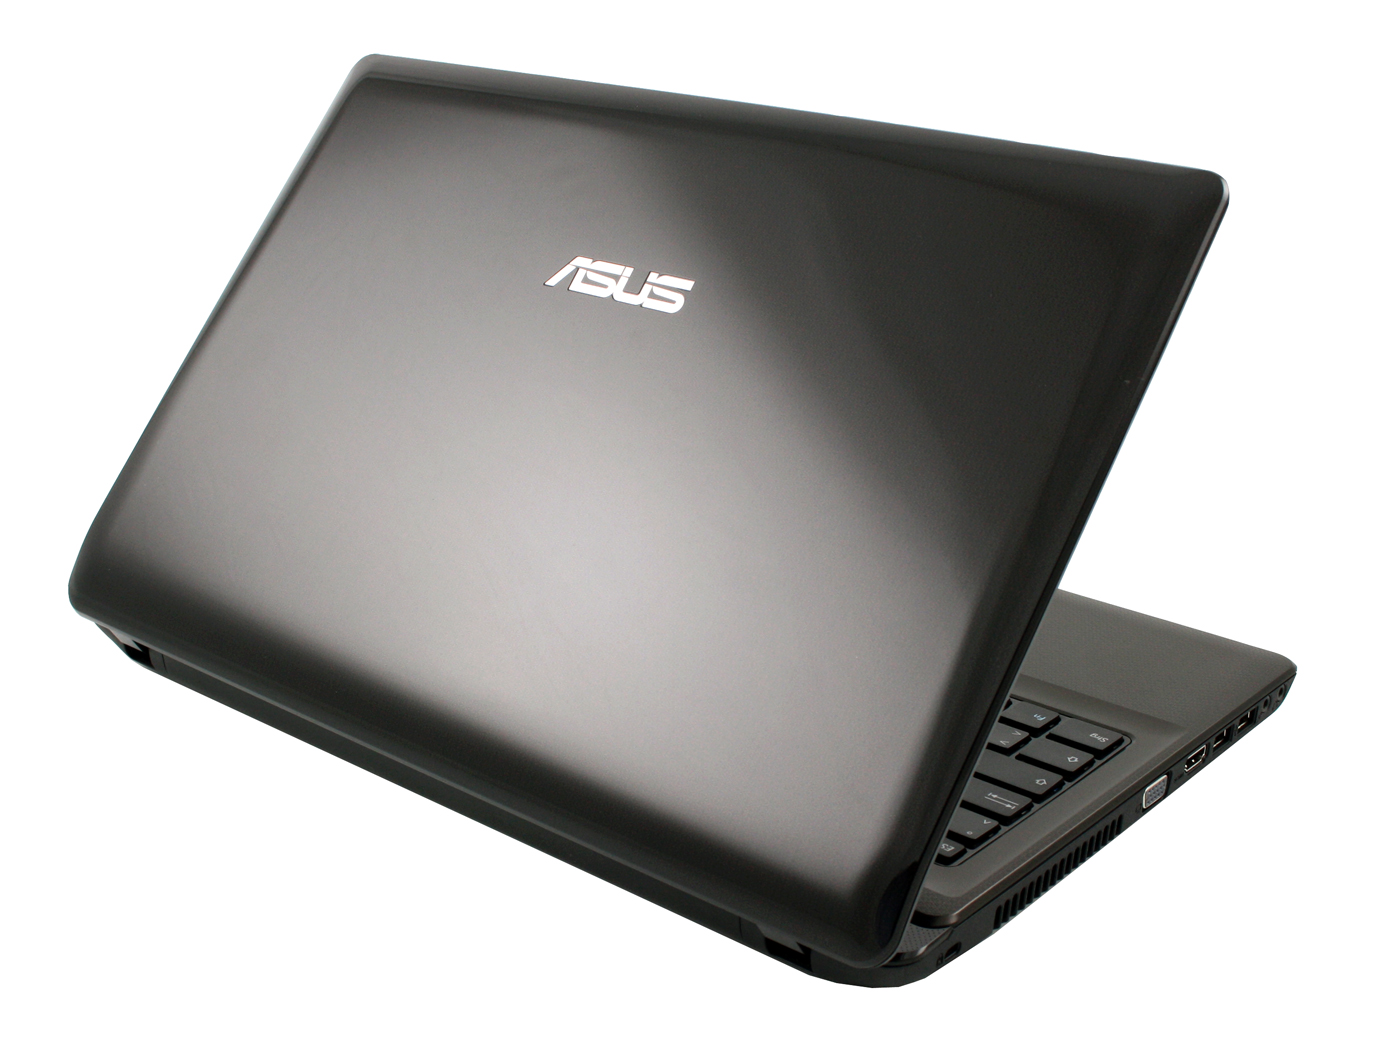 ASUS K52JC INTEL TURBO BOOST MONITOR TREIBER WINDOWS 7